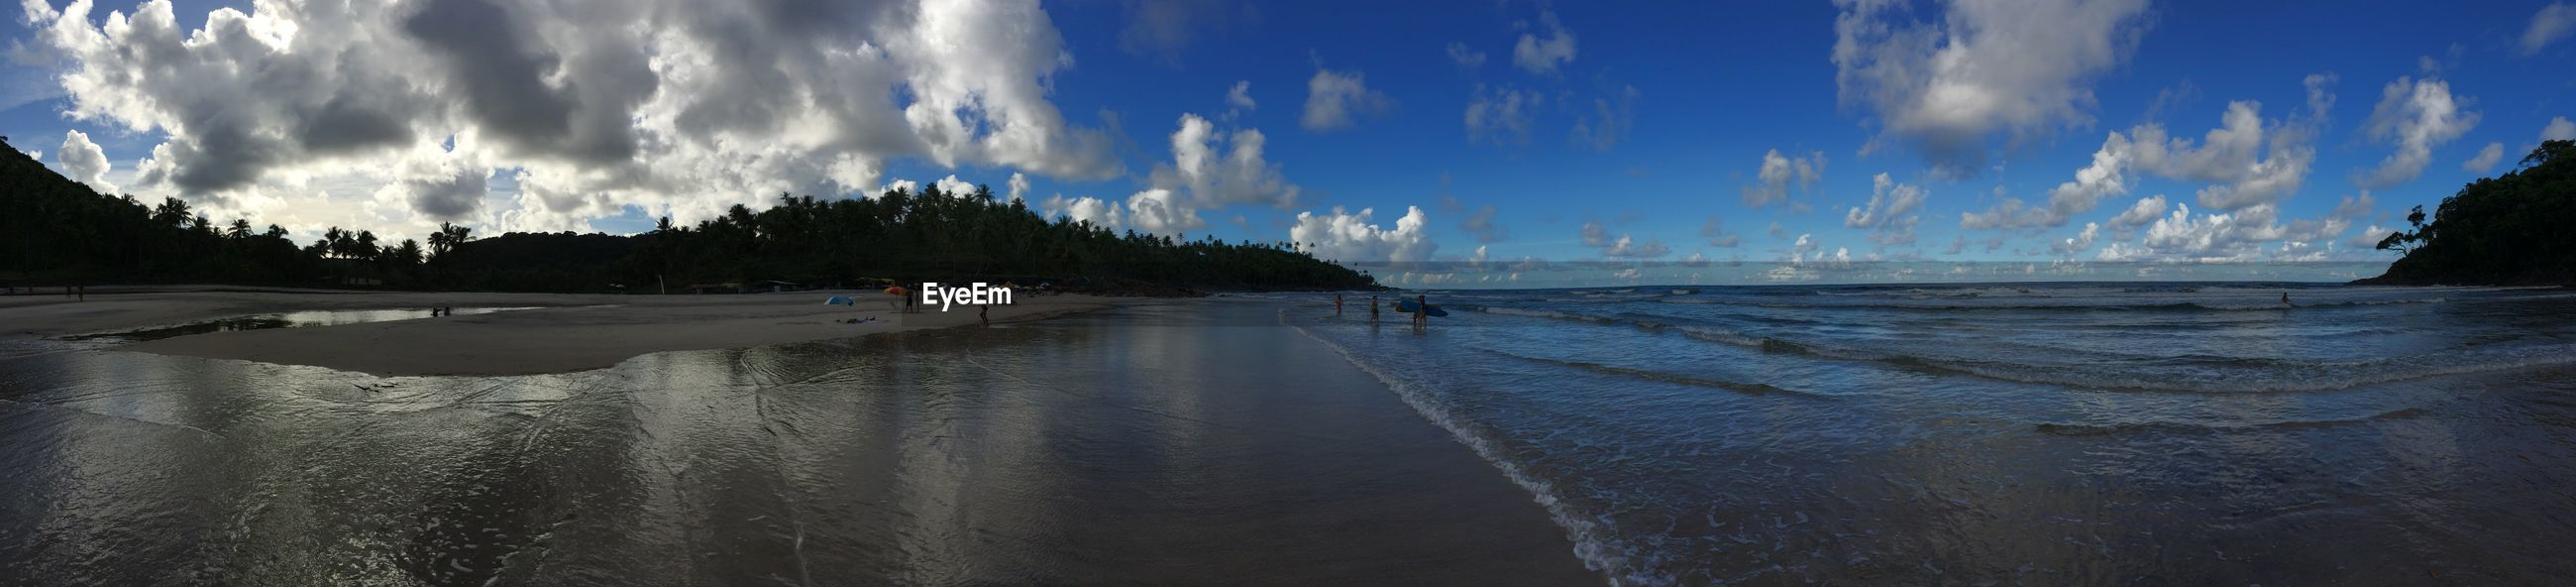 Panoramic view of beach at dusk